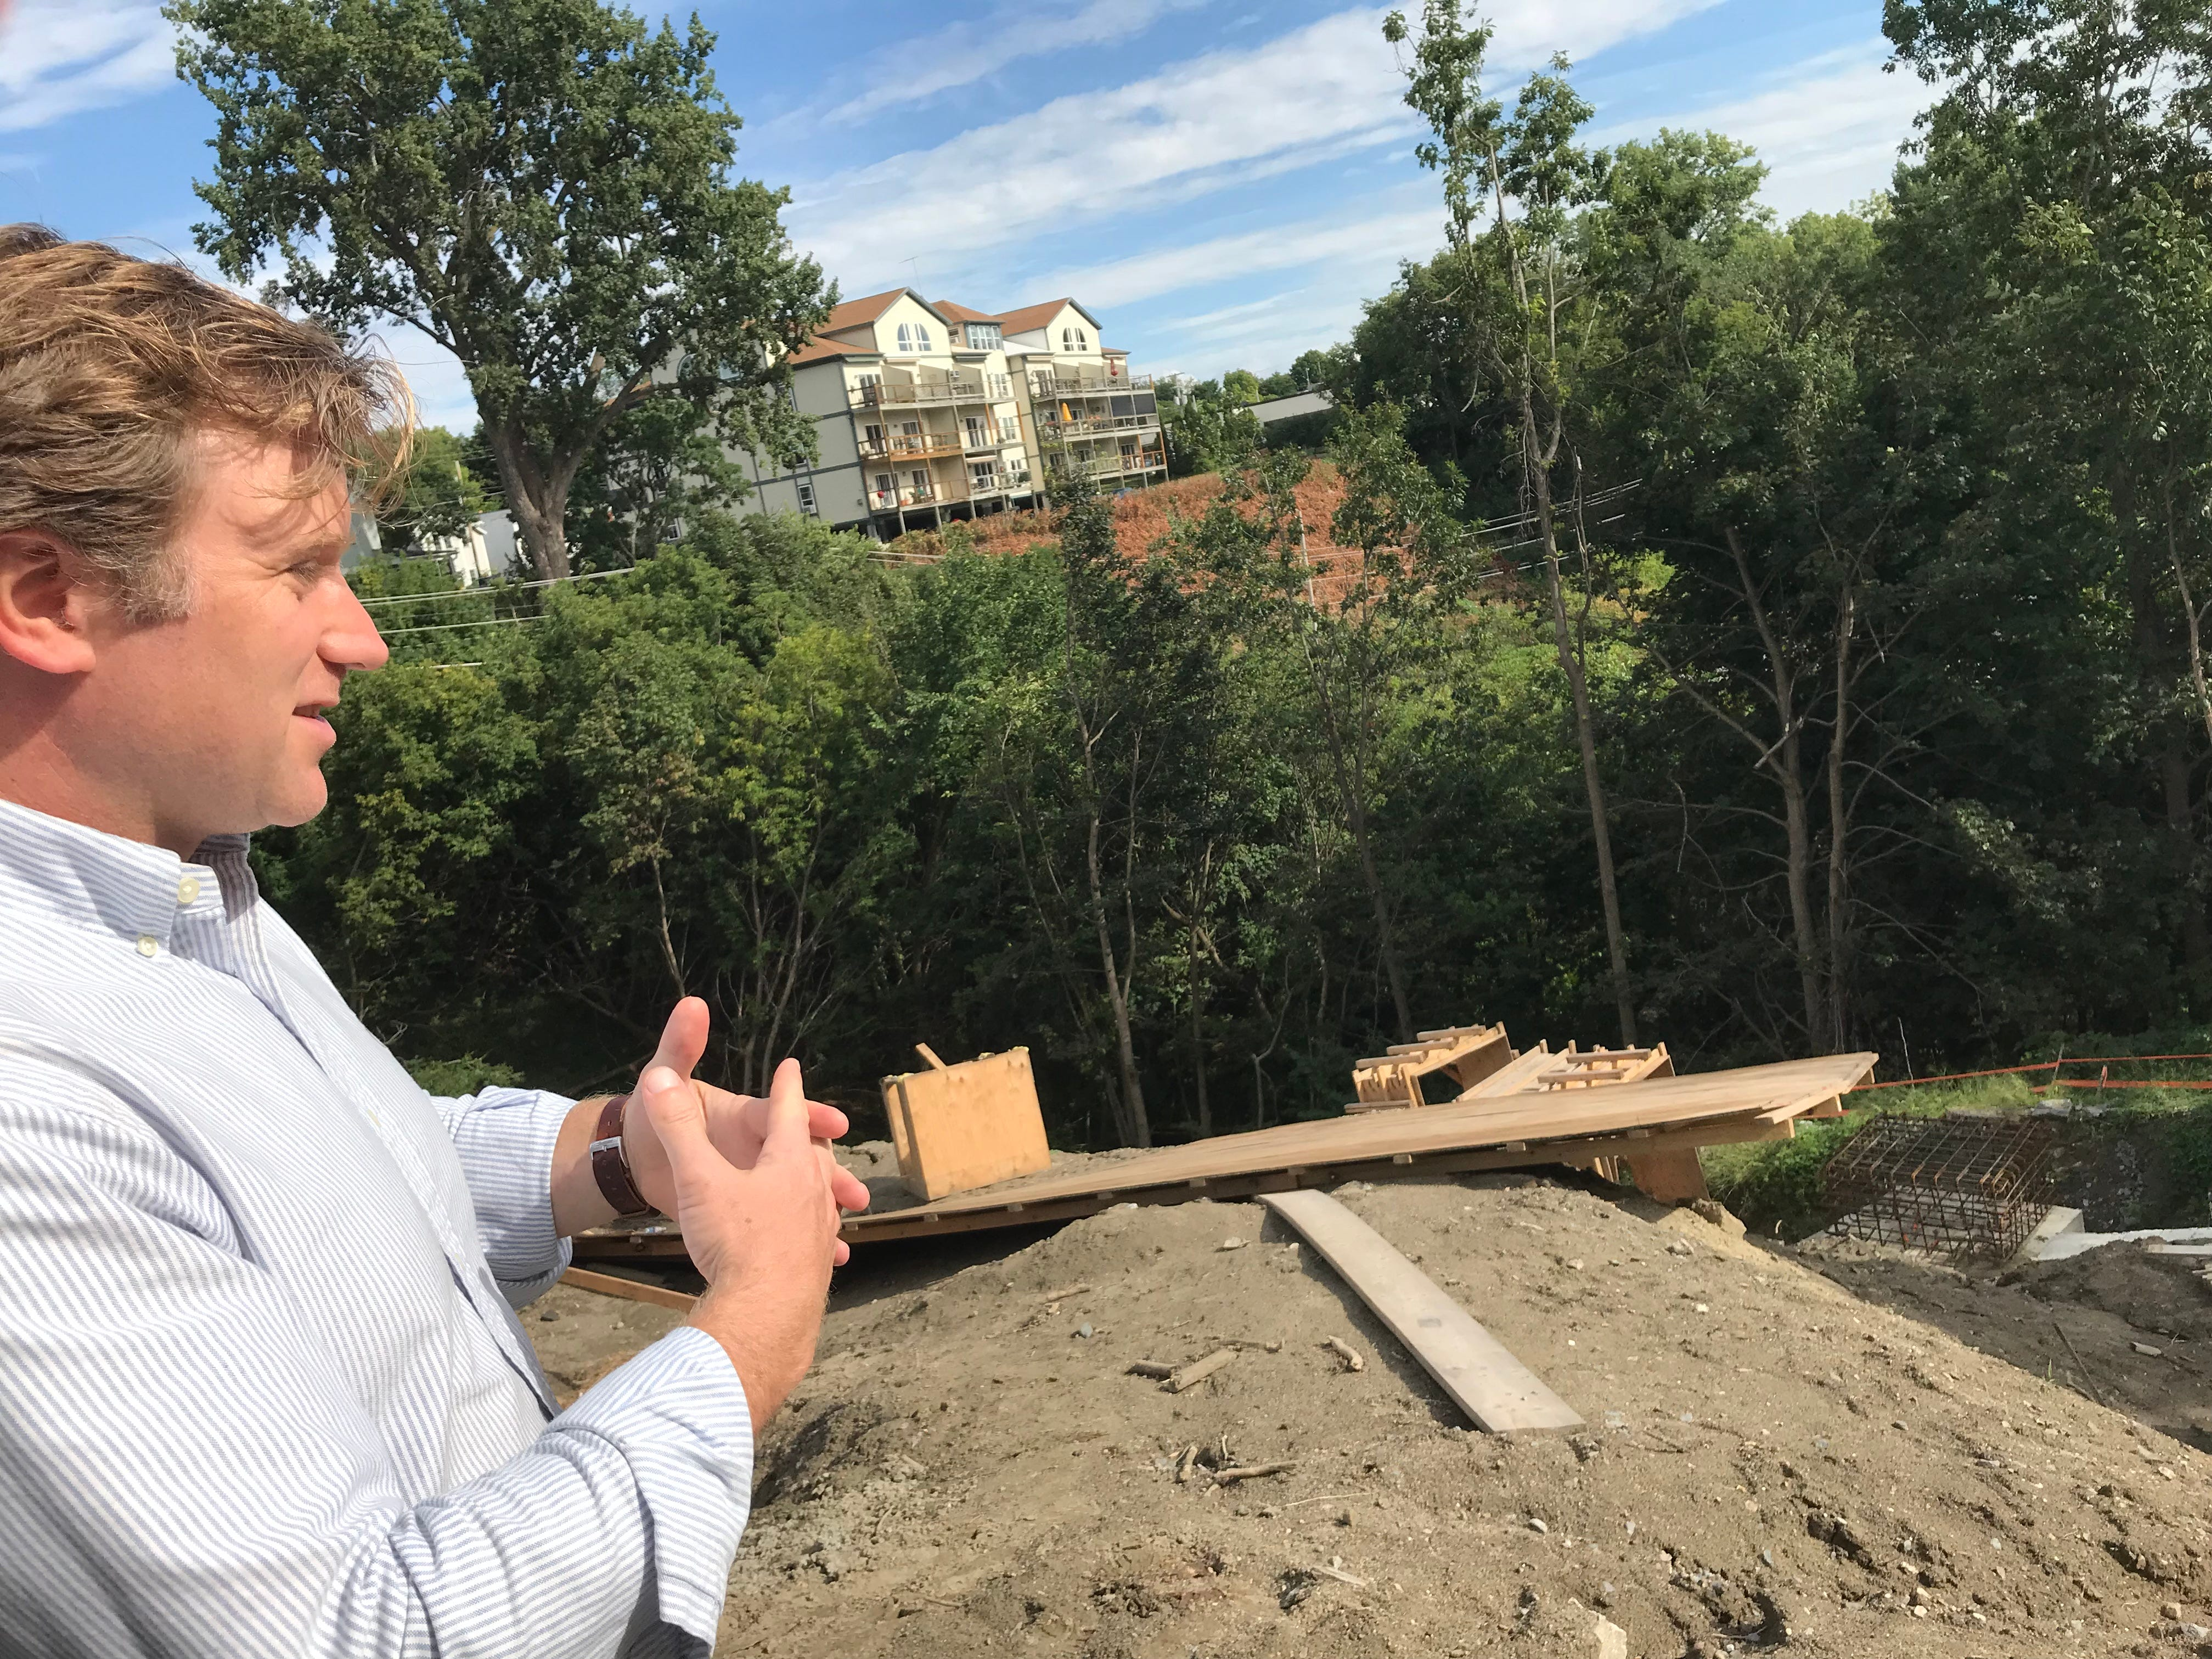 Dan Goltzman, project manager for Burlington-based Redstone, describes construction challenges on a hillside overlooking Lake Champlain in Burlington on Sept. 6, 2018.